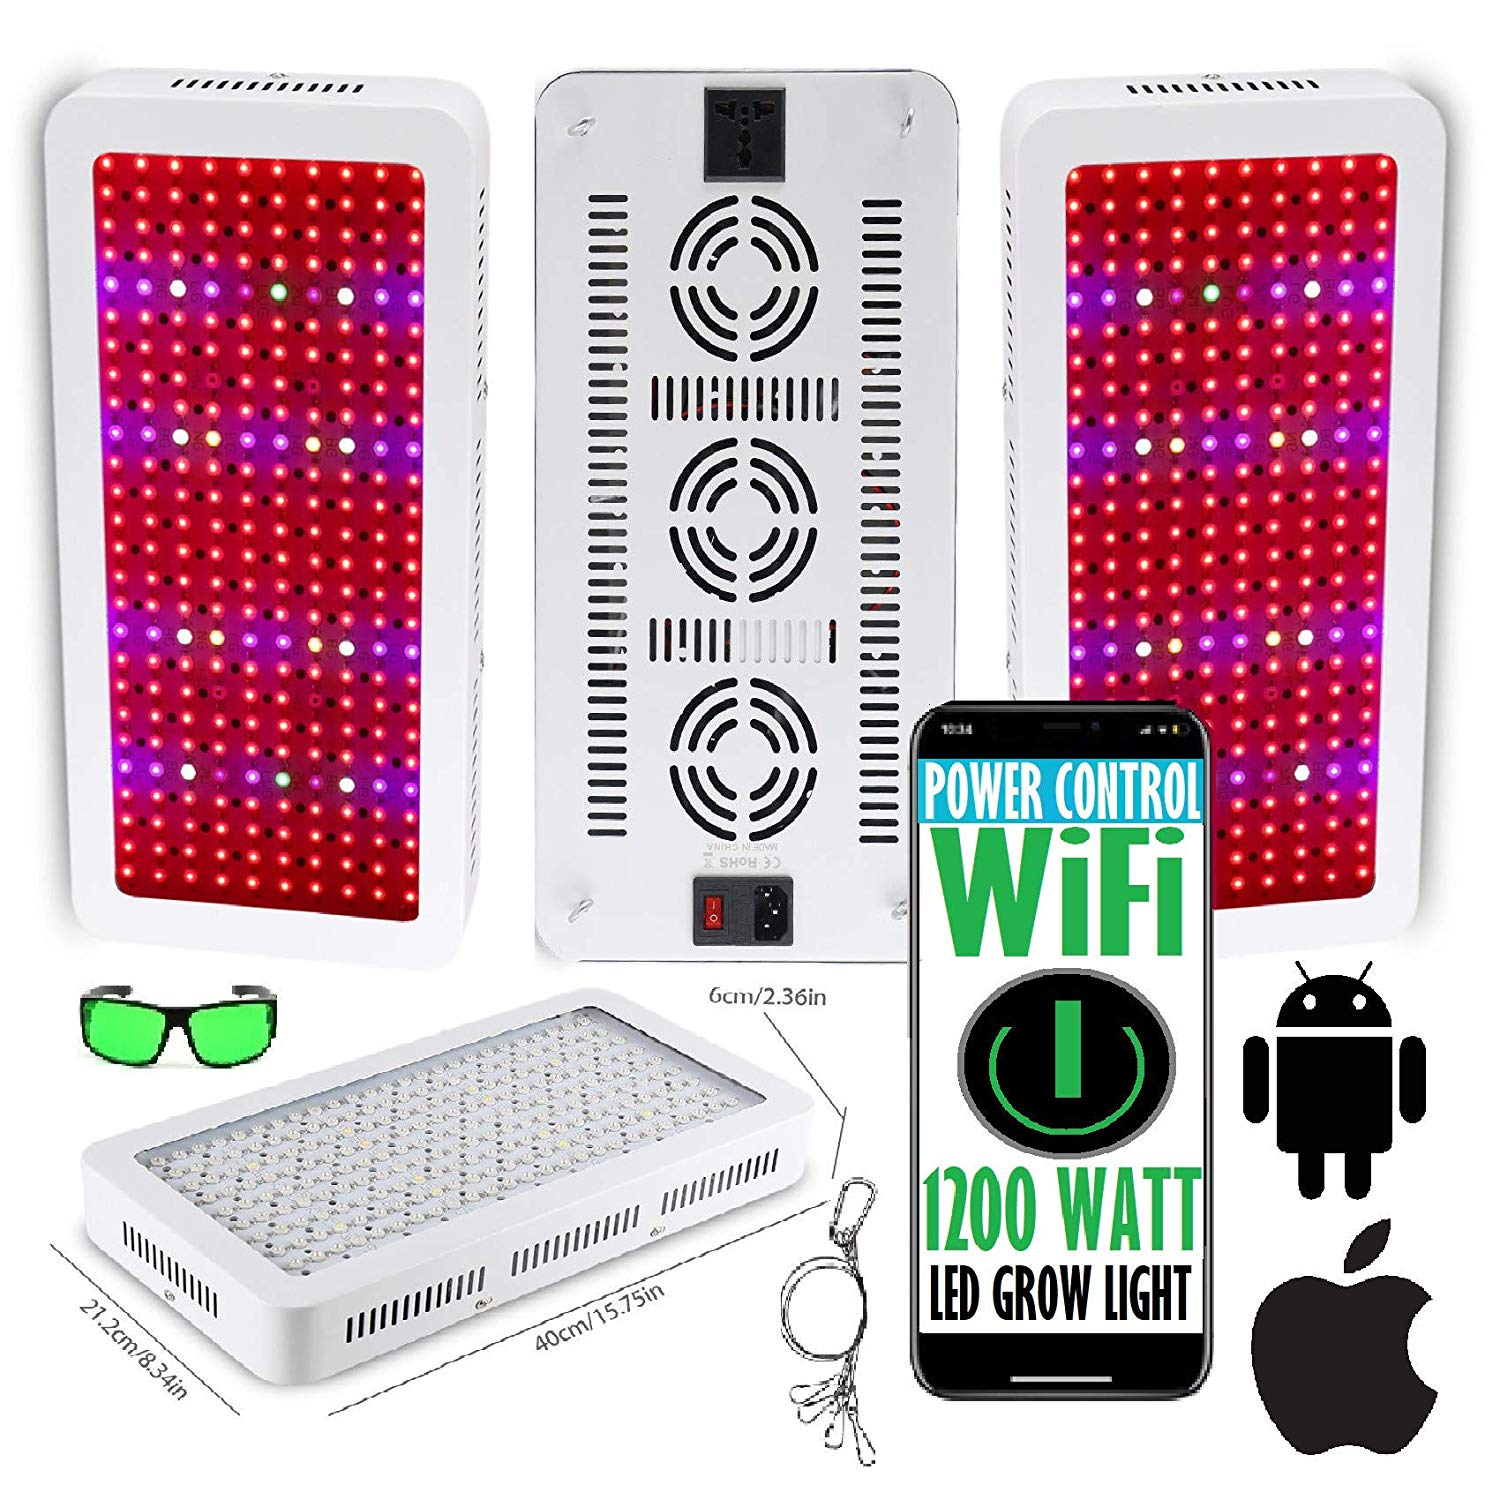 Cultivation Rx WiFi Bestva 1800W LED Grow Light Panel for Indoor Grow Hydroponic Cultivation (2019)